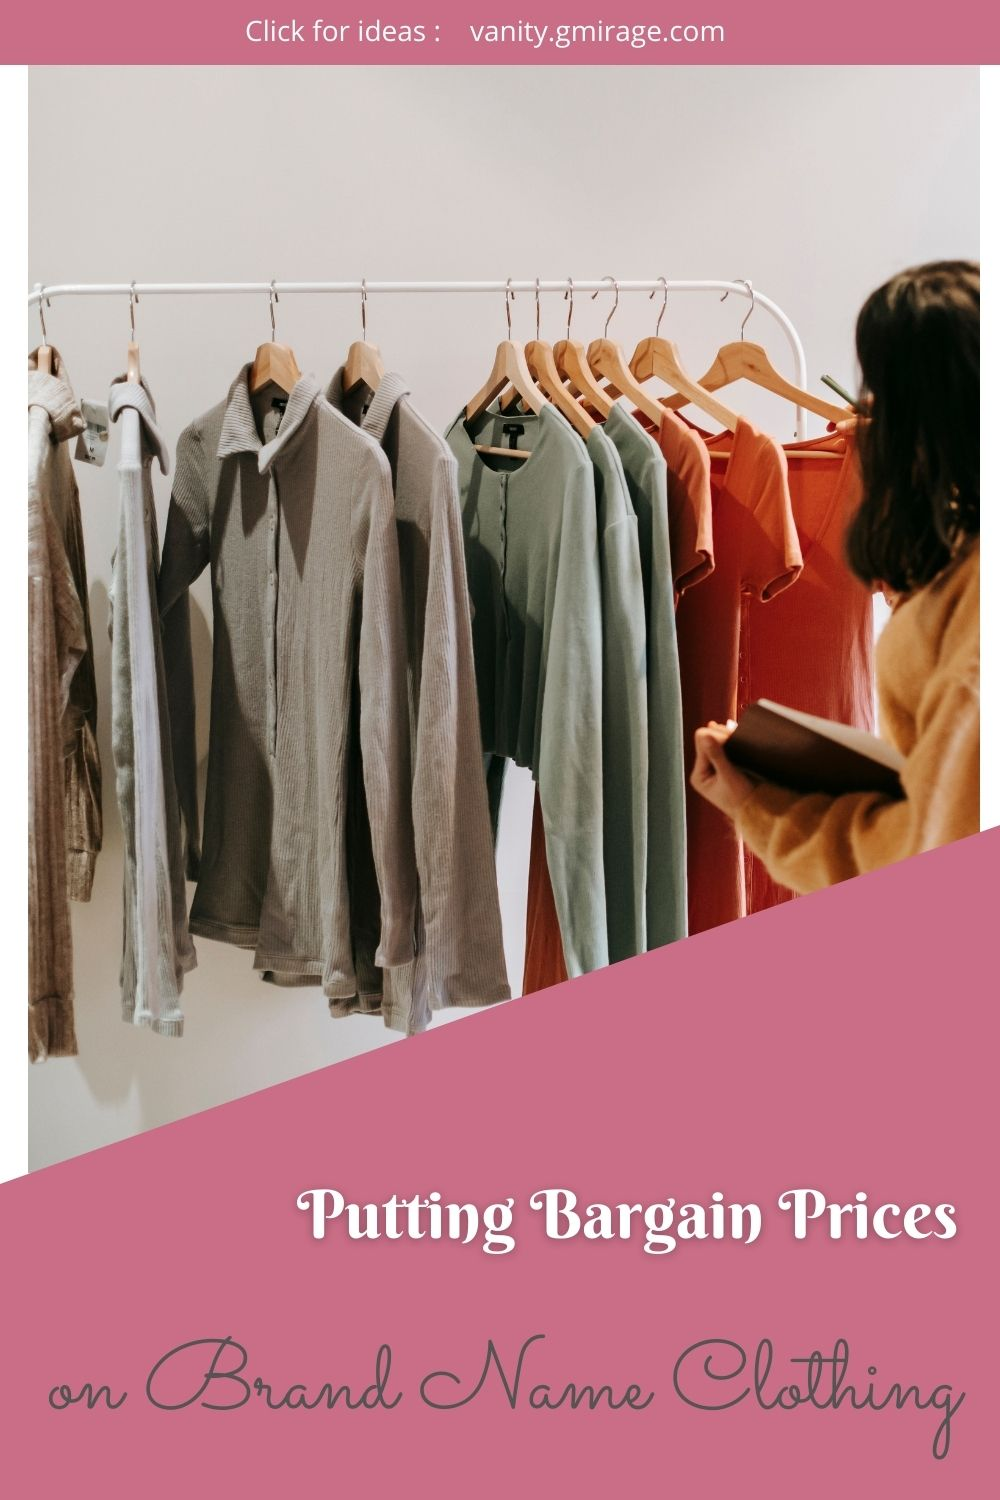 Putting Bargain Prices on Brand Name Clothing